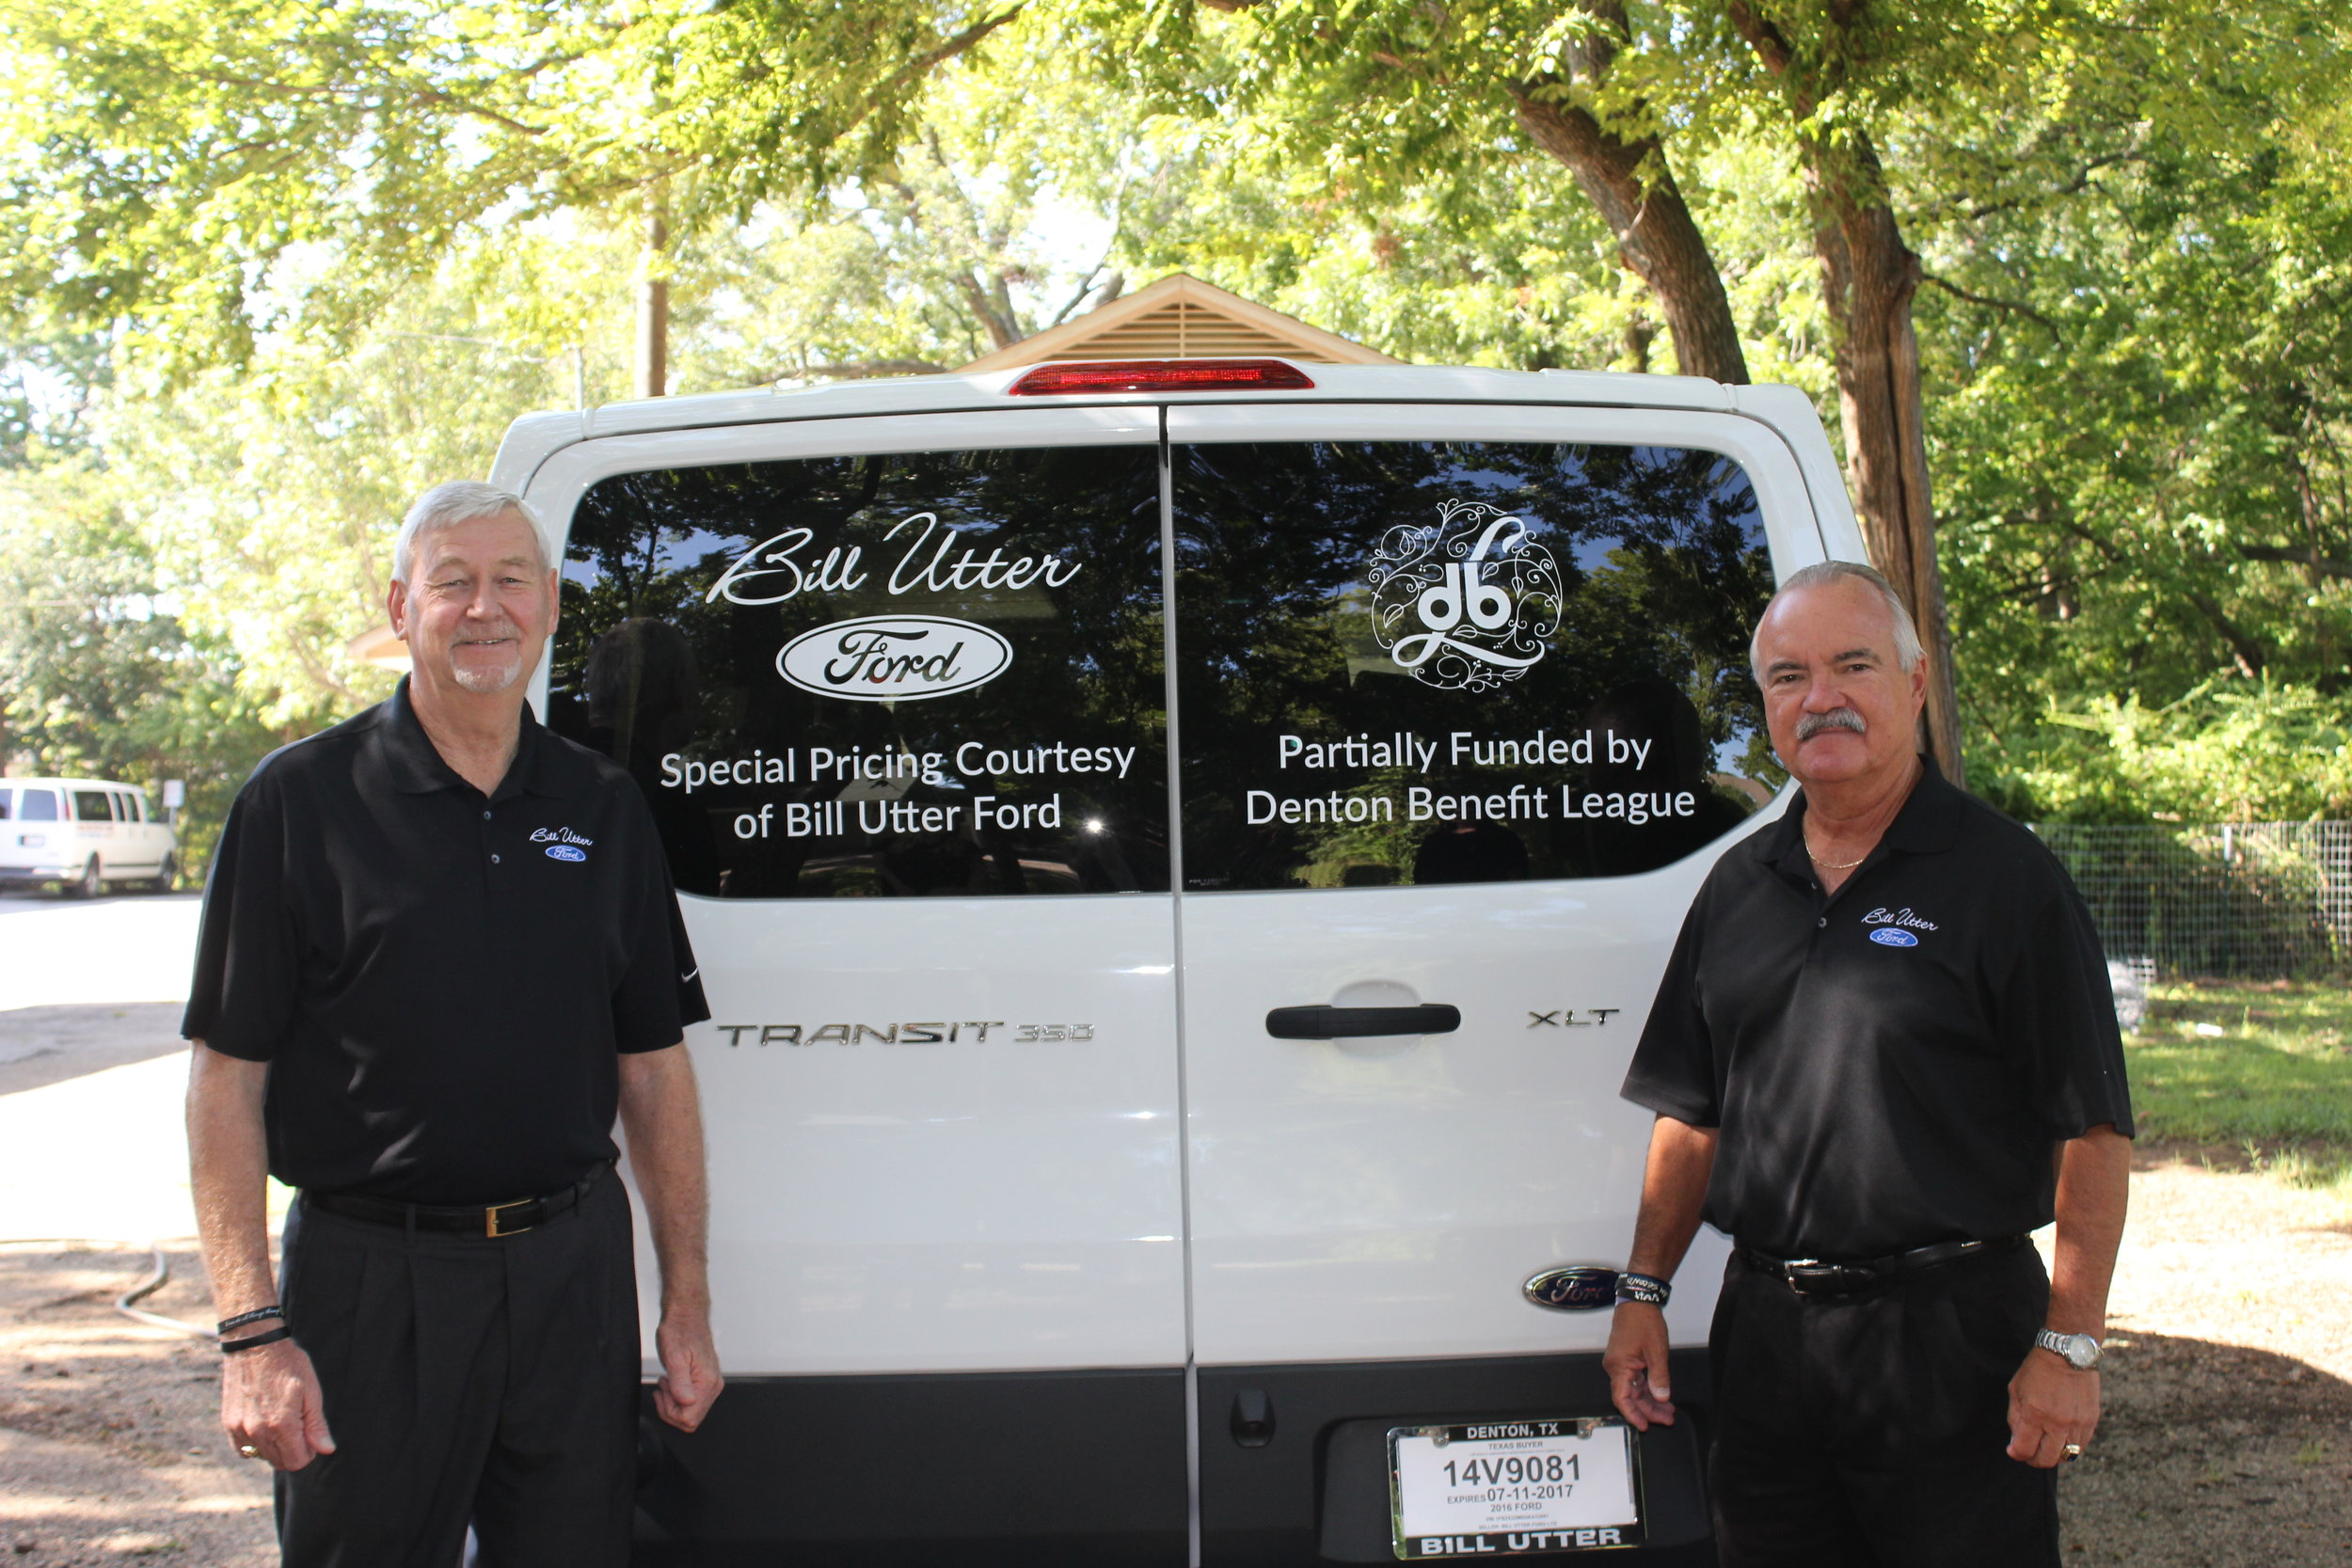 Bill Utter Ford Sales Person Doyle Chaffin &Bill Utter Ford General Sales Manager Carl Anderson